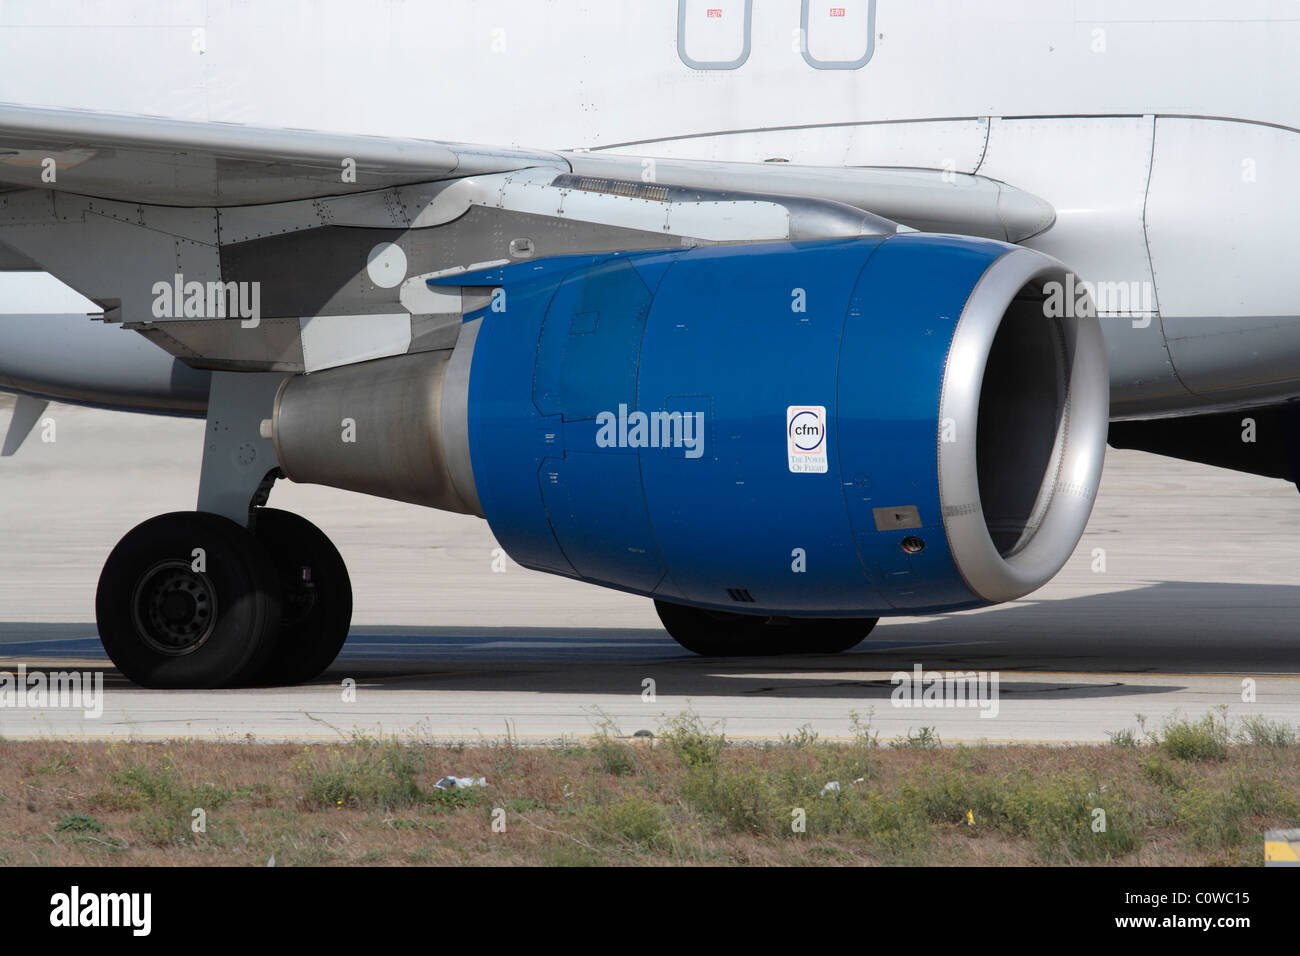 Close-up of a CFM56 turbofan jet engine on an Airbus A320, with CFM logo visible on the engine nacelle. Editorial - Stock Image